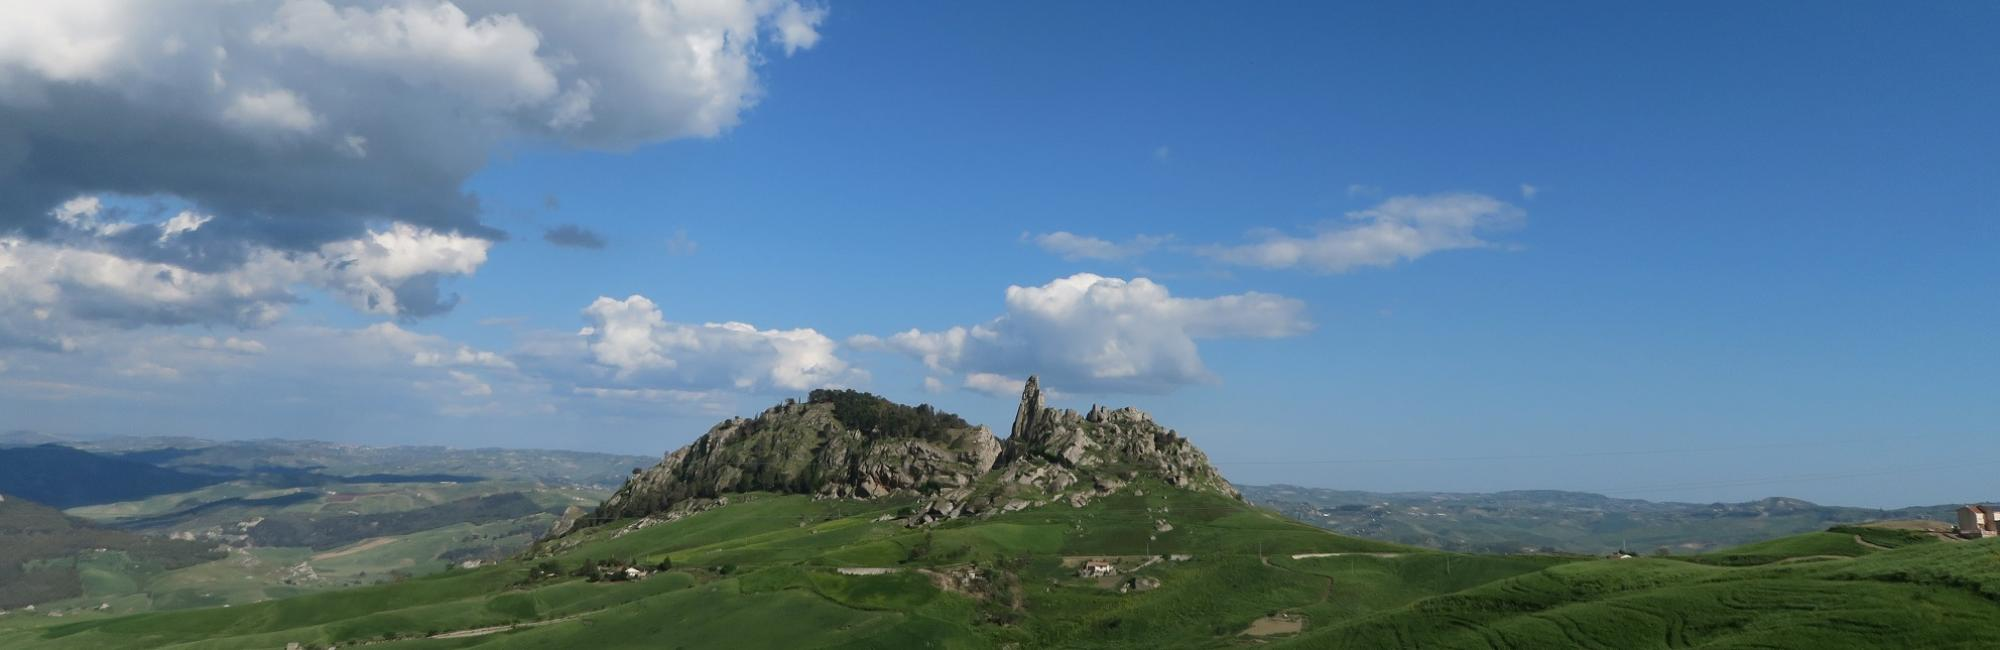 Magna Via in Sicily: from Palermo to Agrigento